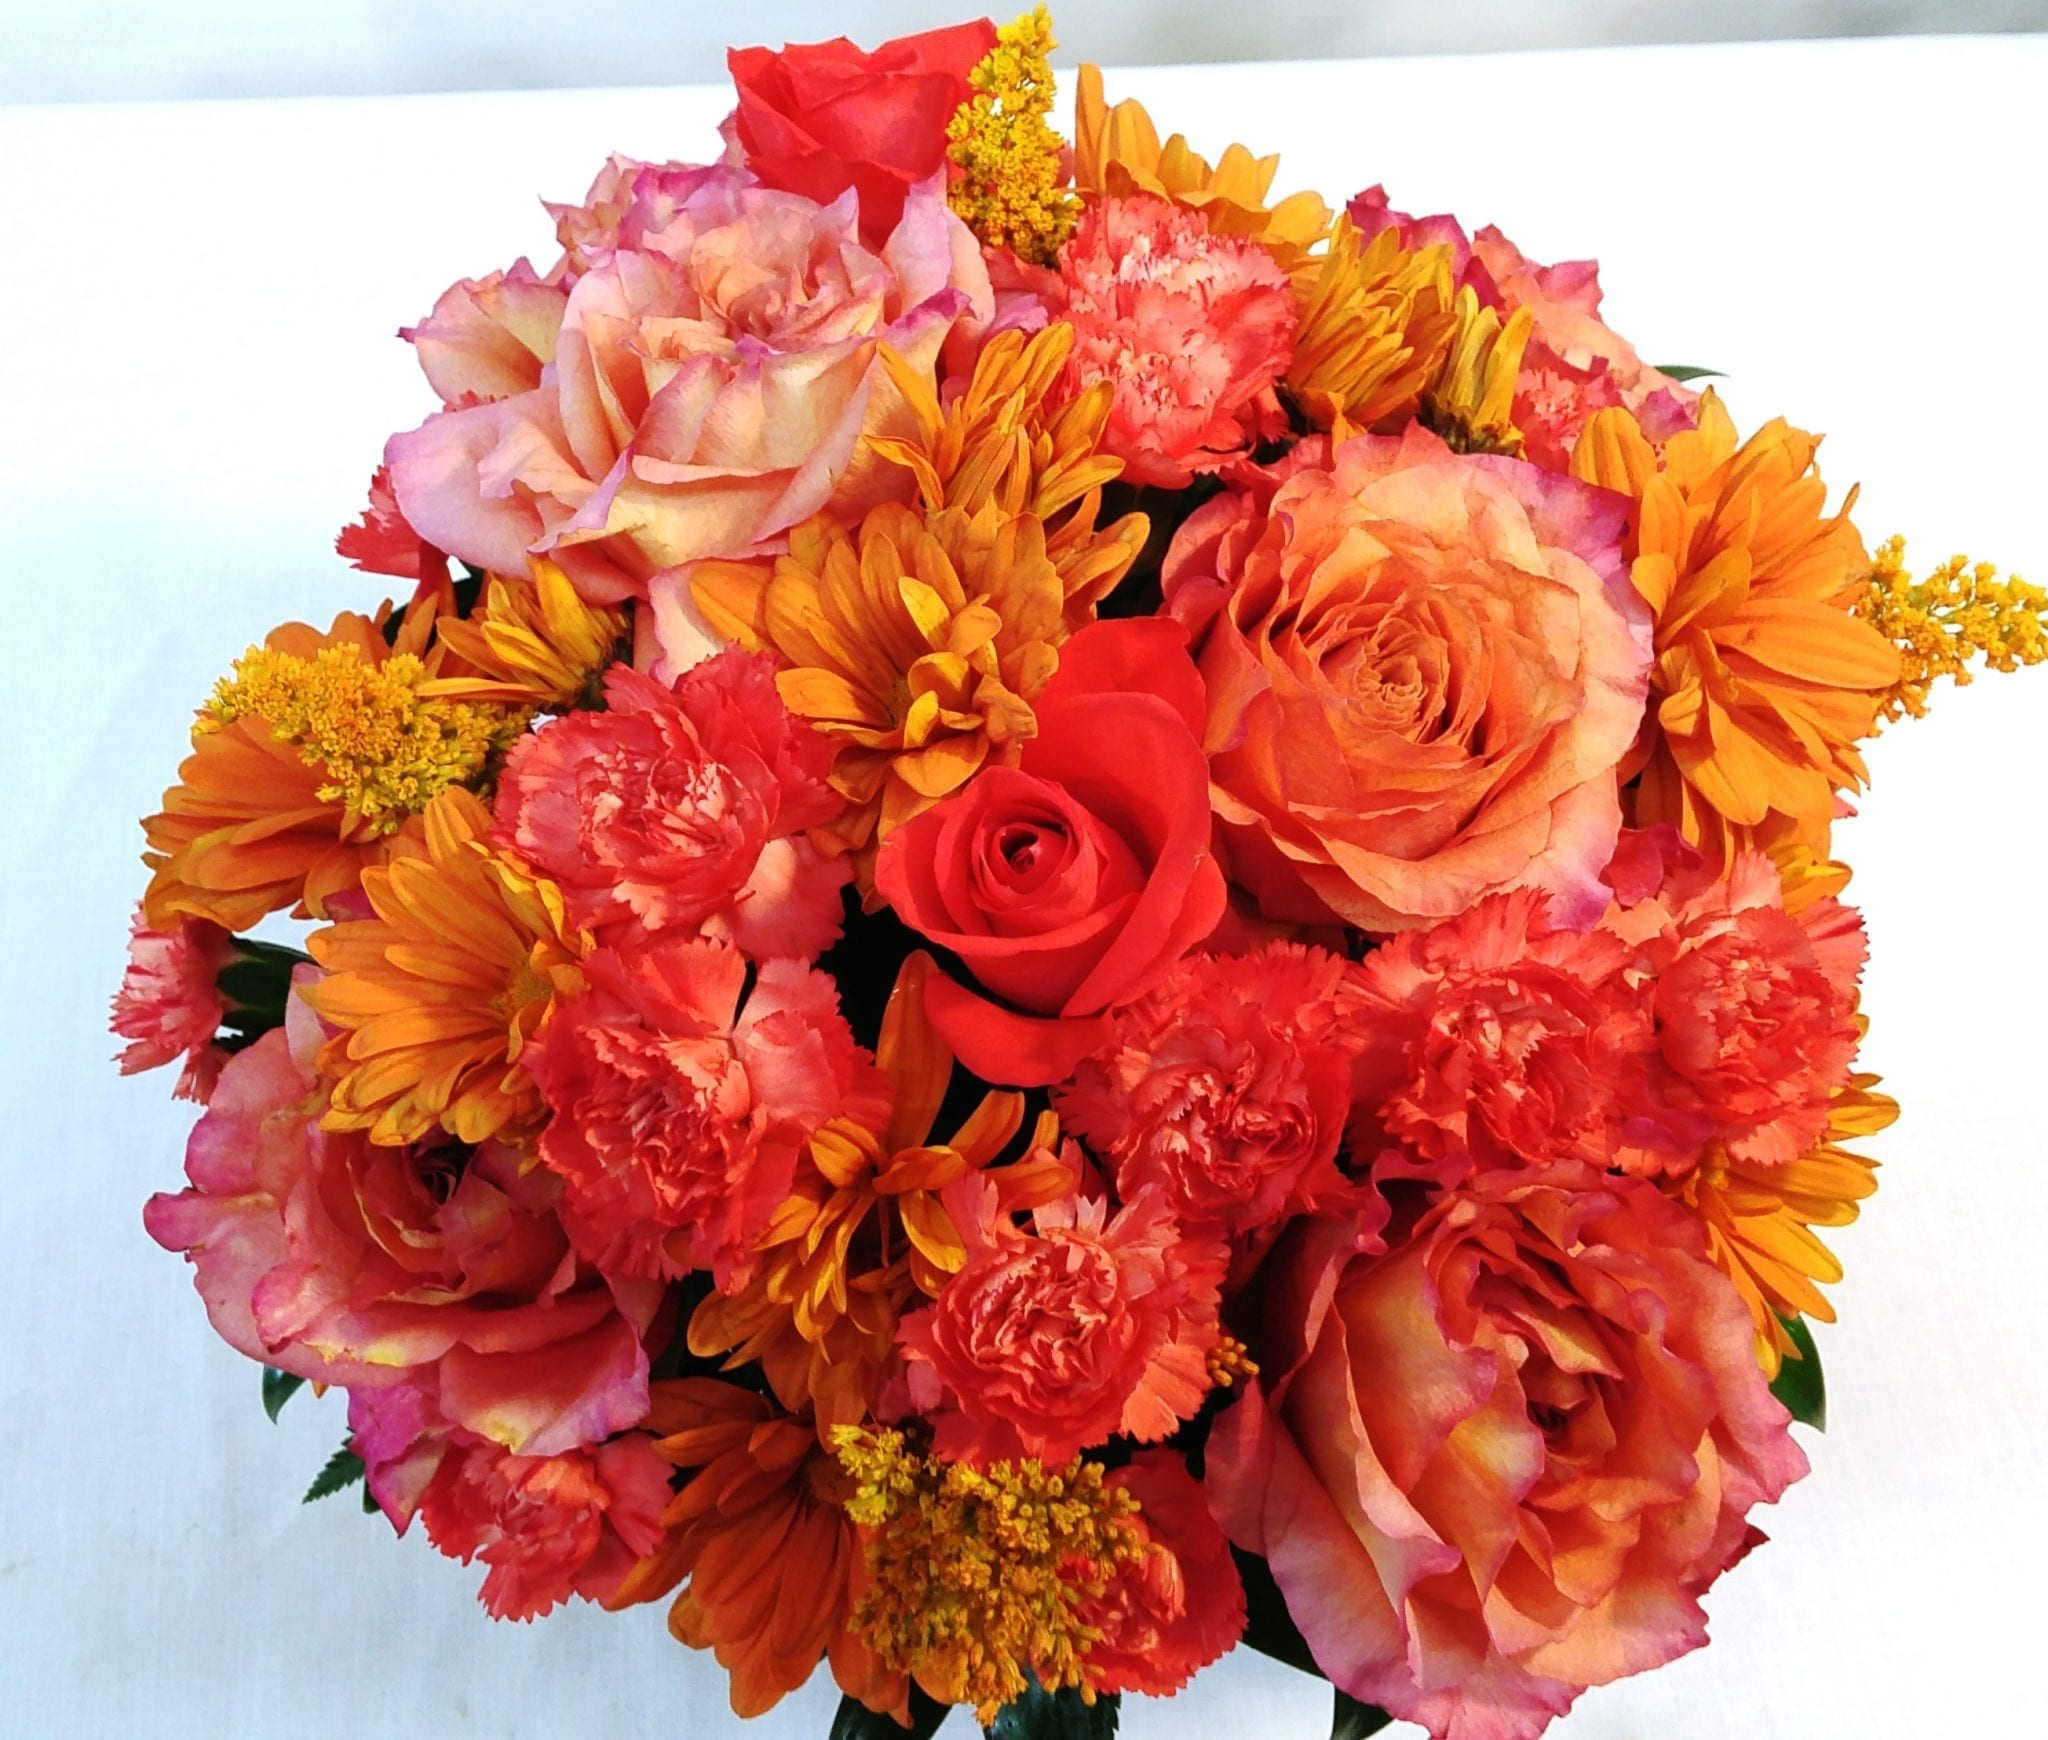 SAME DAY DELIVERY Colors of Love-Orange Cube - Fiesta Flowers Plants ...